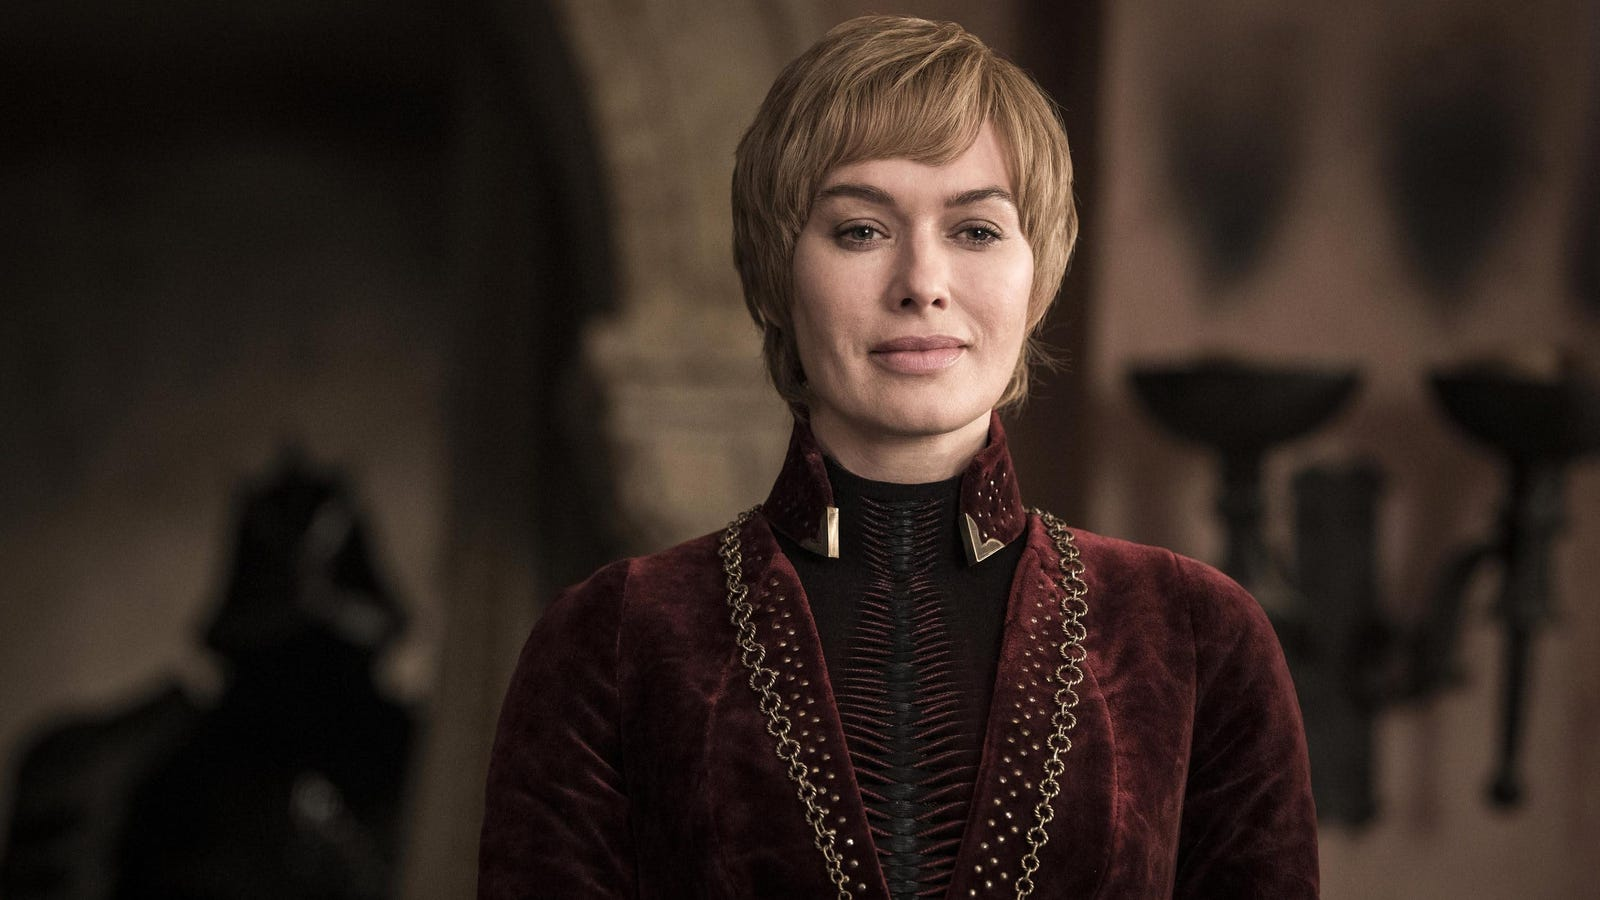 By the Light of the Seven, It's Time for io9's Weekly Game of Thrones Spoiler Discussion Zone – Gizmodo